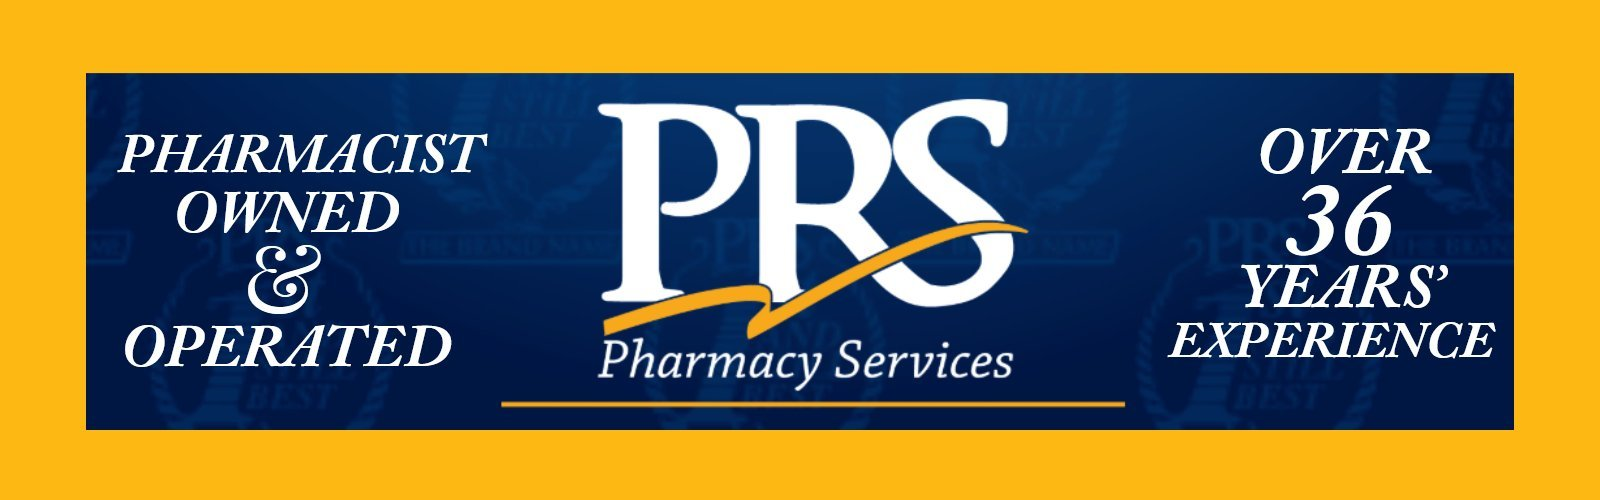 pharmacy consulting, pharmacy consultants, independent pharmacy consulting